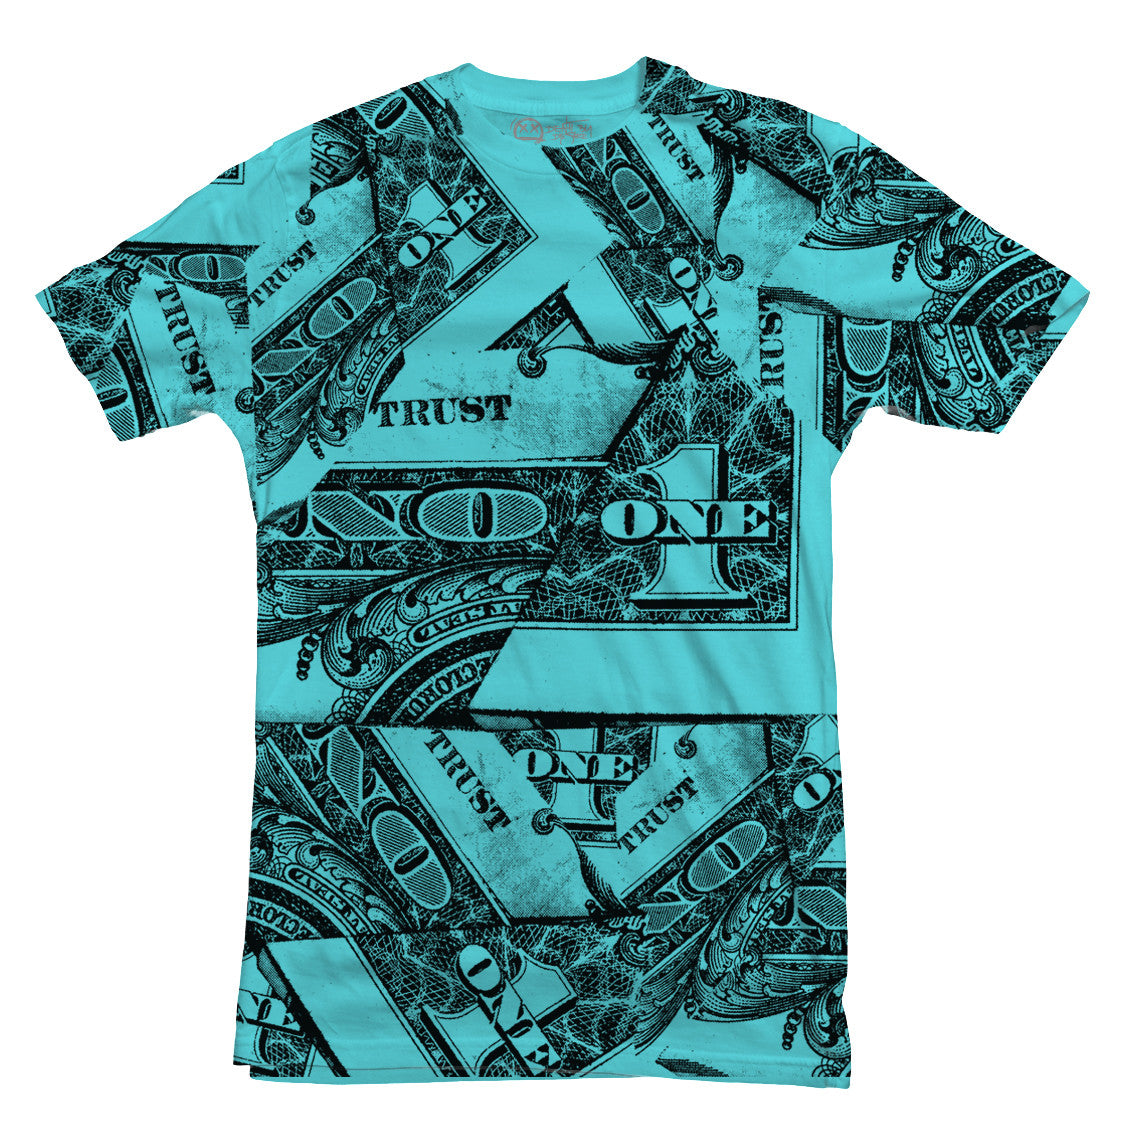 b4fd4251c5c525 Home Jordan 11 Gamma Blue Shirt - Trust No One - Gamma Blue. Share